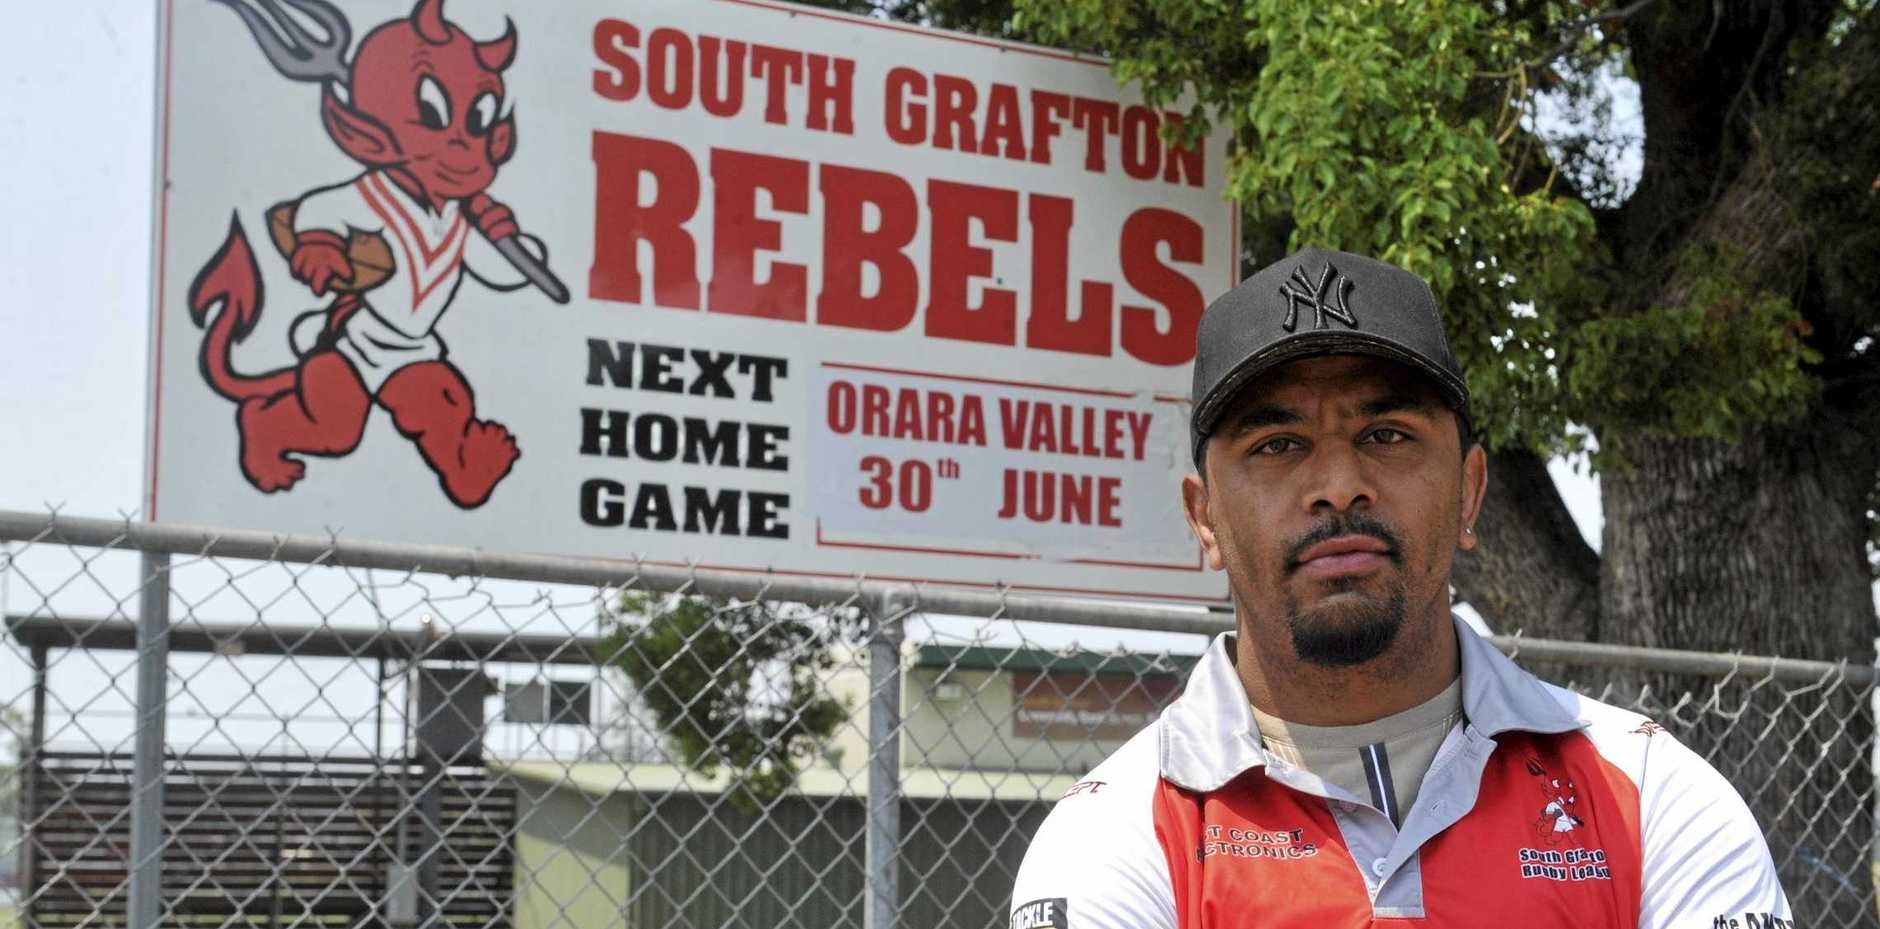 South Grafton Rebels new coach Roy Bell in front of the Rebels sign at McKittrick Park.